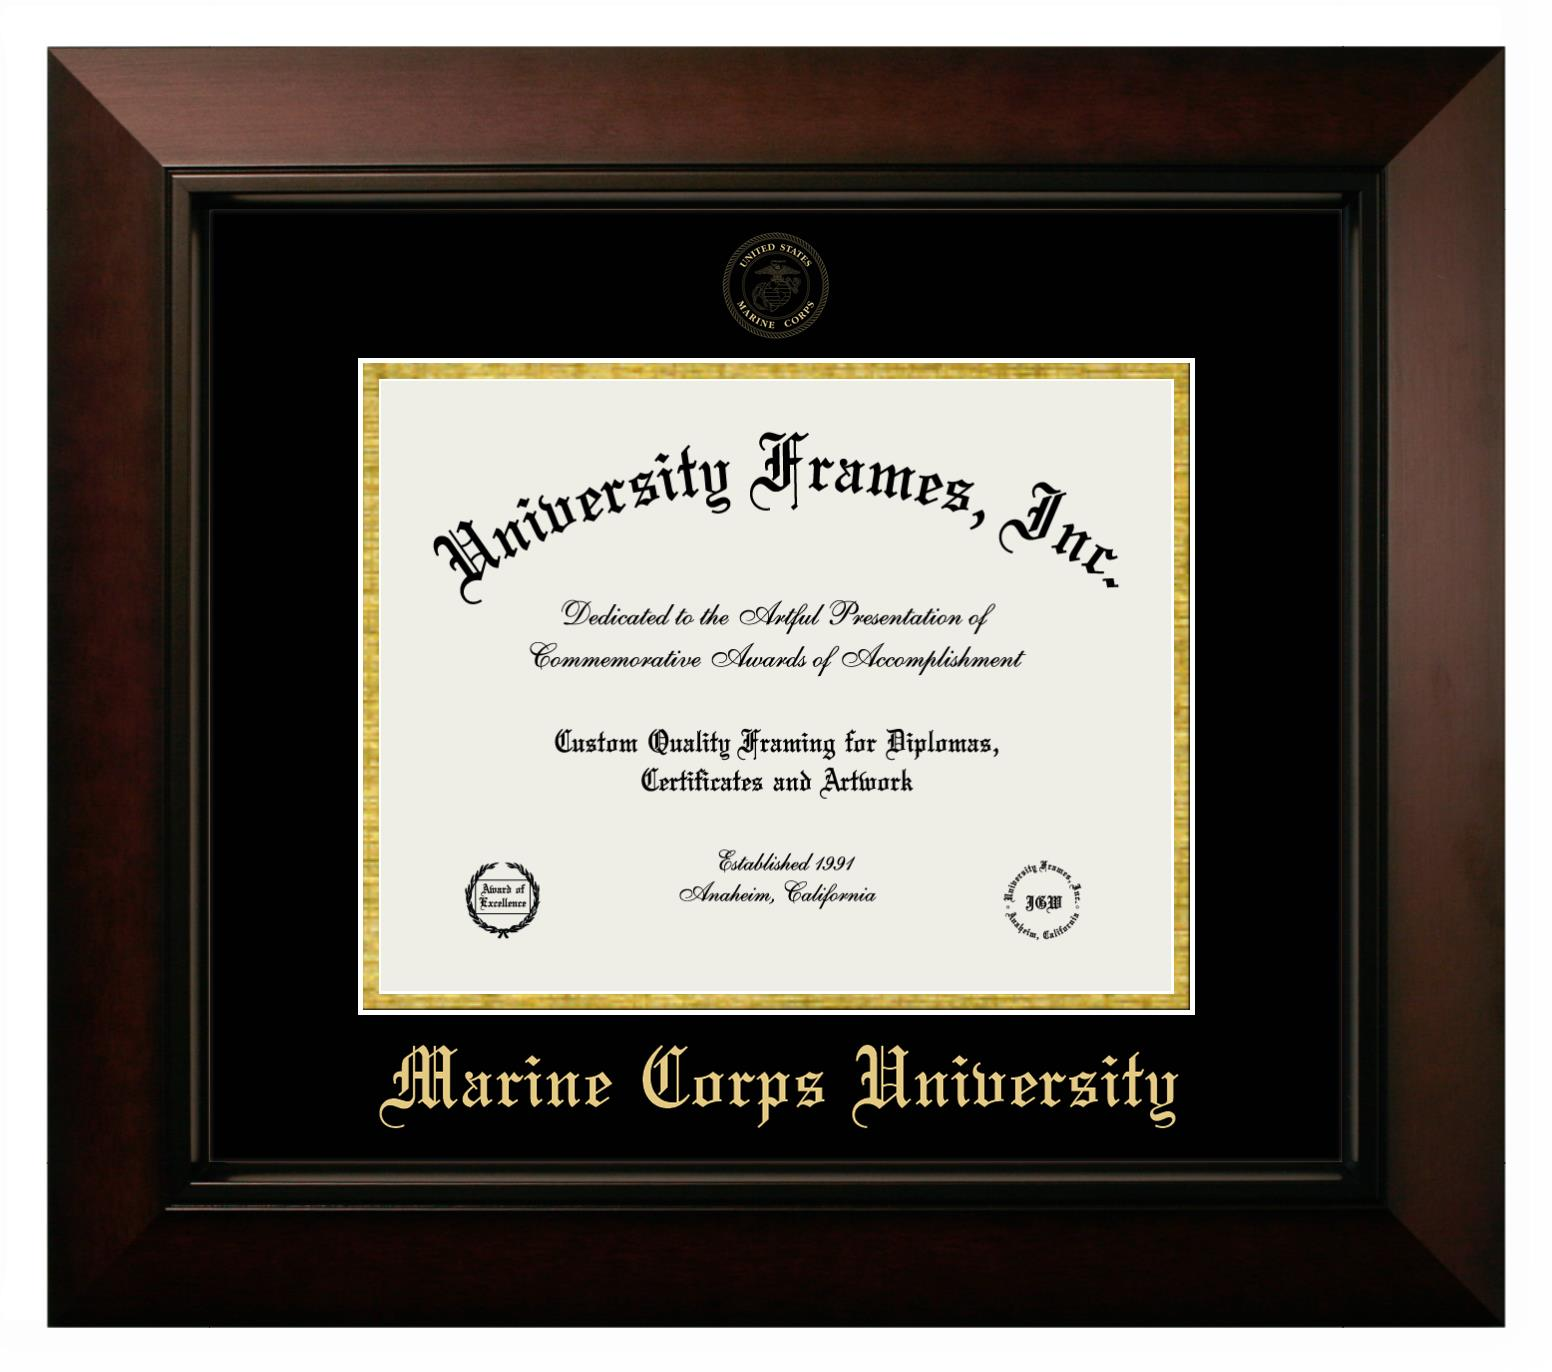 Marine Corps University Diploma Frame In Legacy Black Cherry With Black Gold Mats